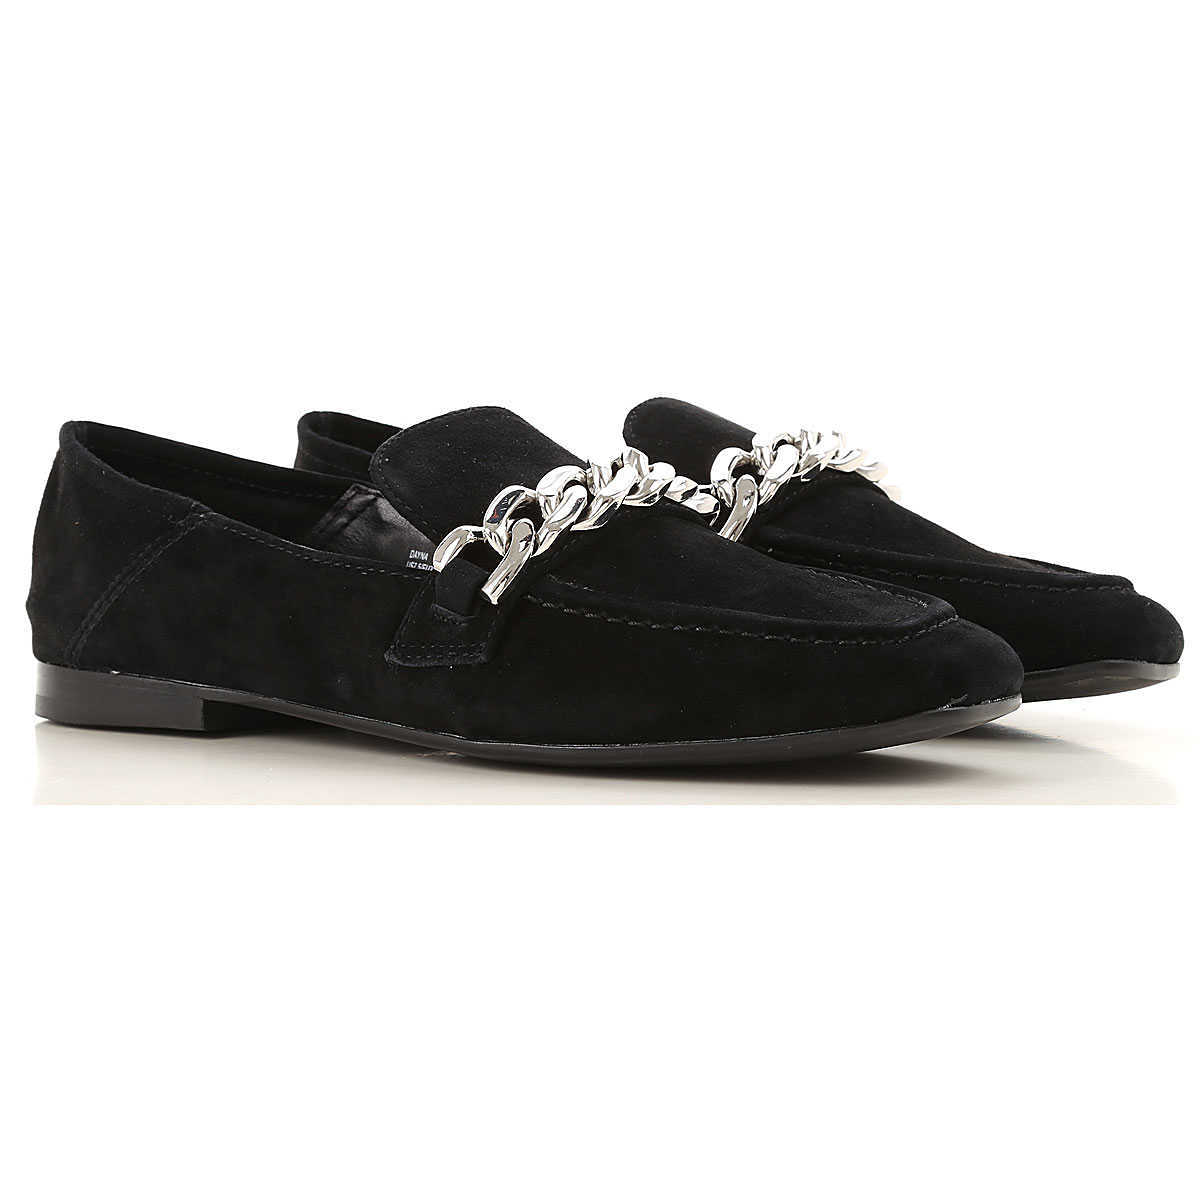 Steve Madden Loafers for Women Black Canada - GOOFASH - Womens FLAT SHOES